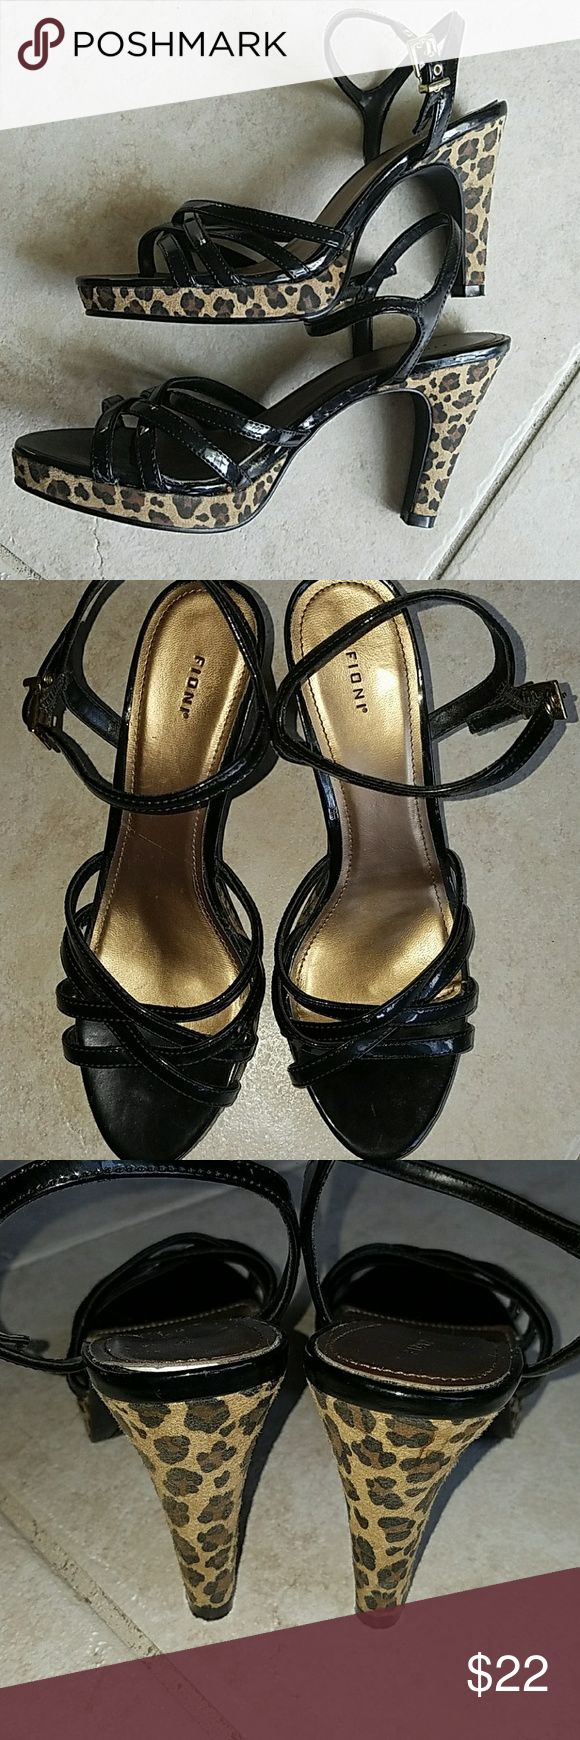 Fioni black patent & animal print heels Cute Fioni strappy heels in black patent with animal print heel and trim. These are in great condition.  **Bundle and Save** Fioni Shoes Heels